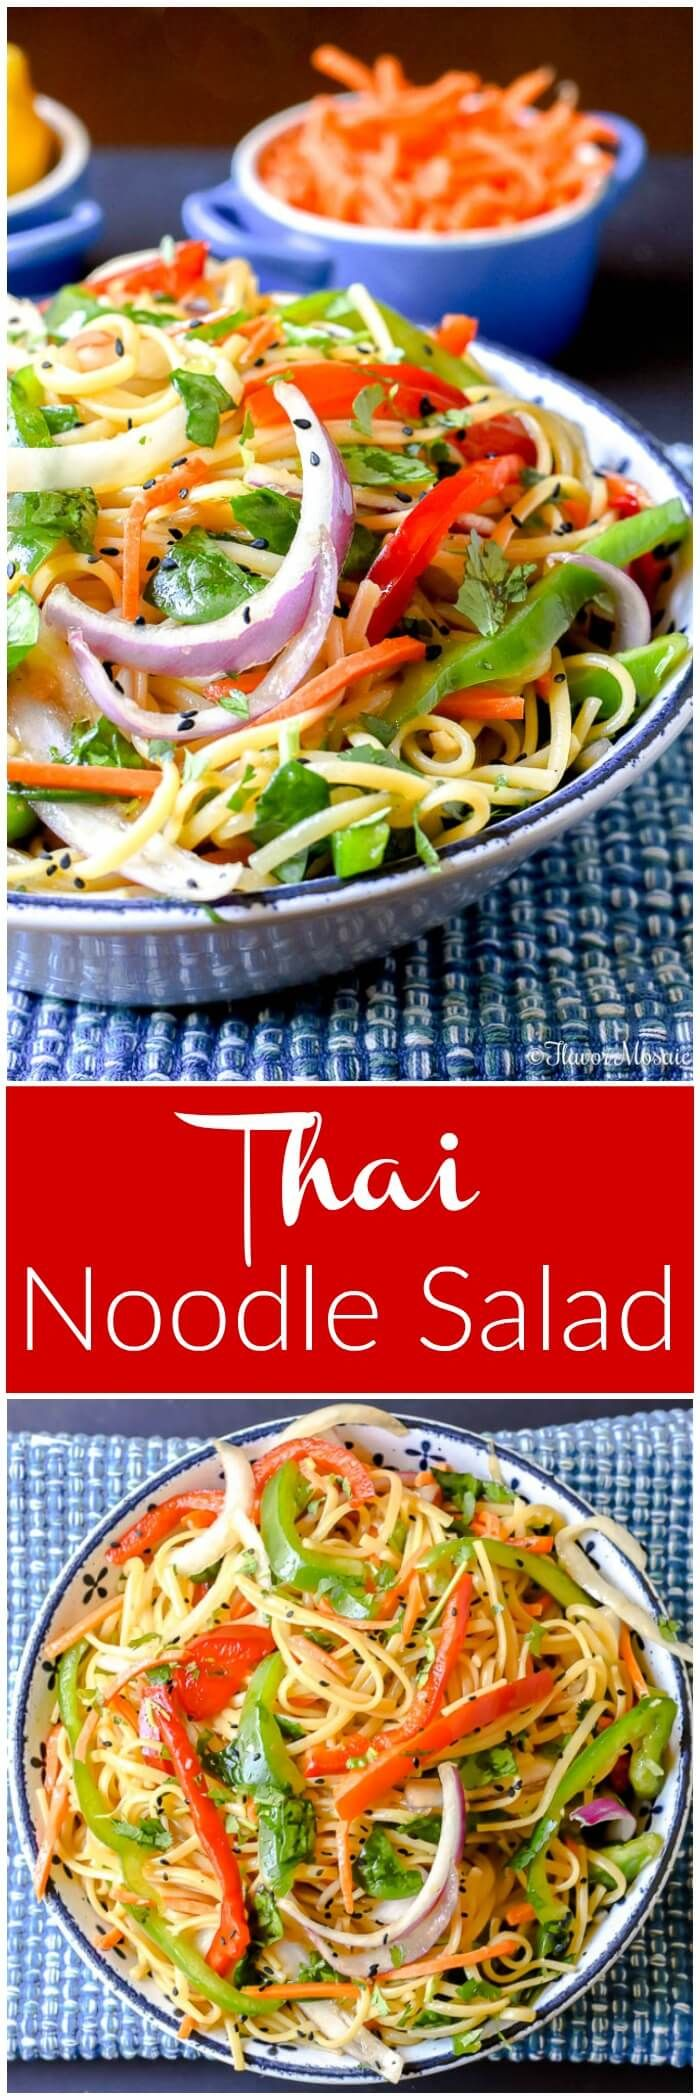 This Thai Noodle Salad is full of flavor and vegetables, can be served hot or cold, and has just enough of a kick to get your attention at any BBQ, potluck, or picnic. via @flavormosaic